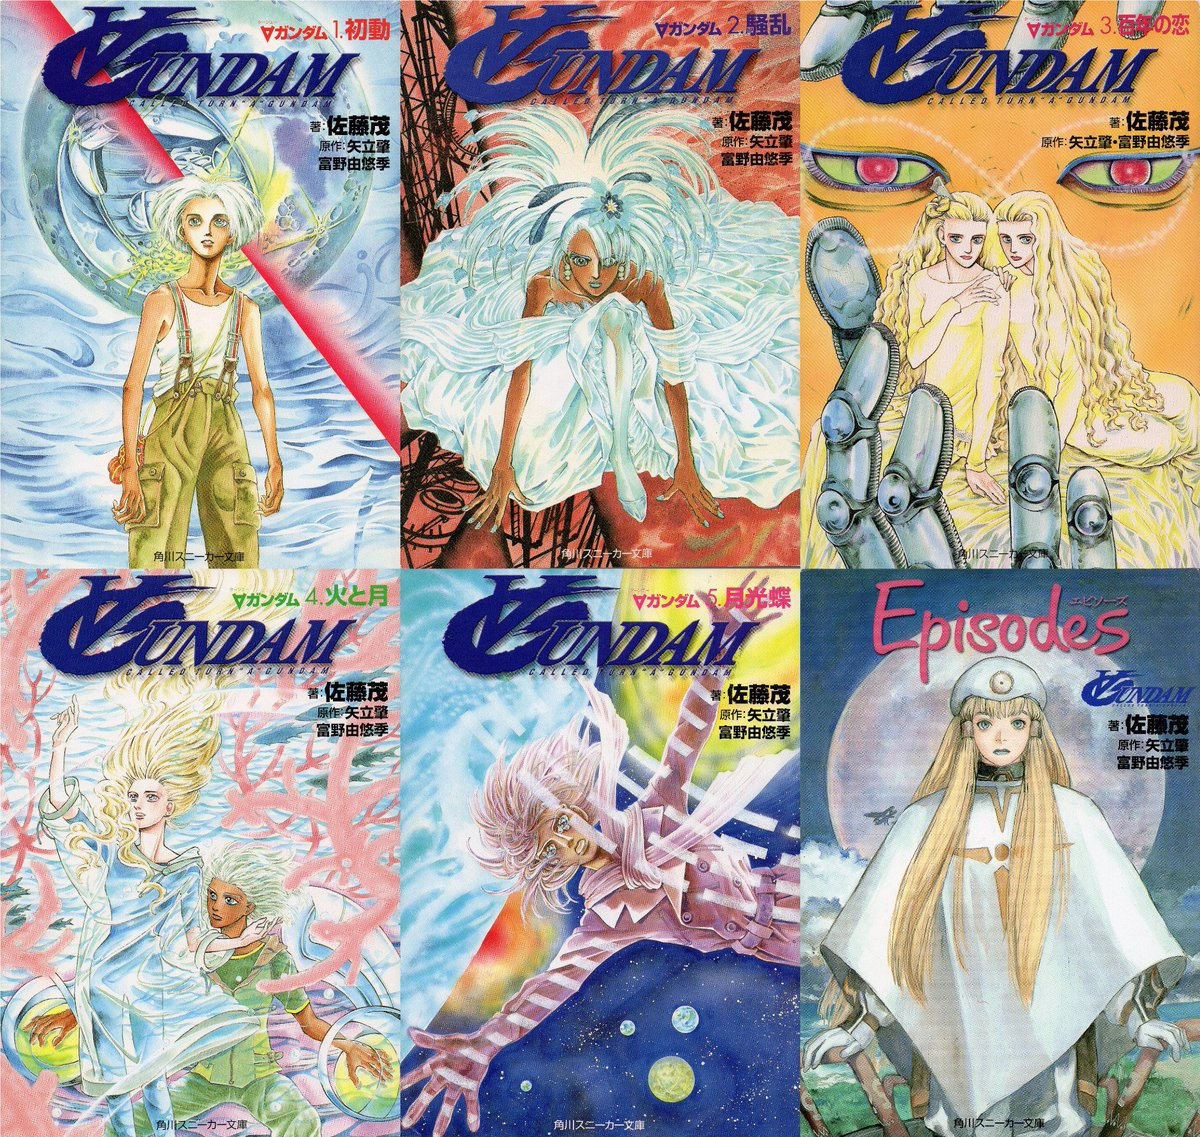 Scans to the covers of the Turn A Gundam novels by Shigeru Sato (illustrations by Moto Hagio). <br>http://pic.twitter.com/sMViIl60kF